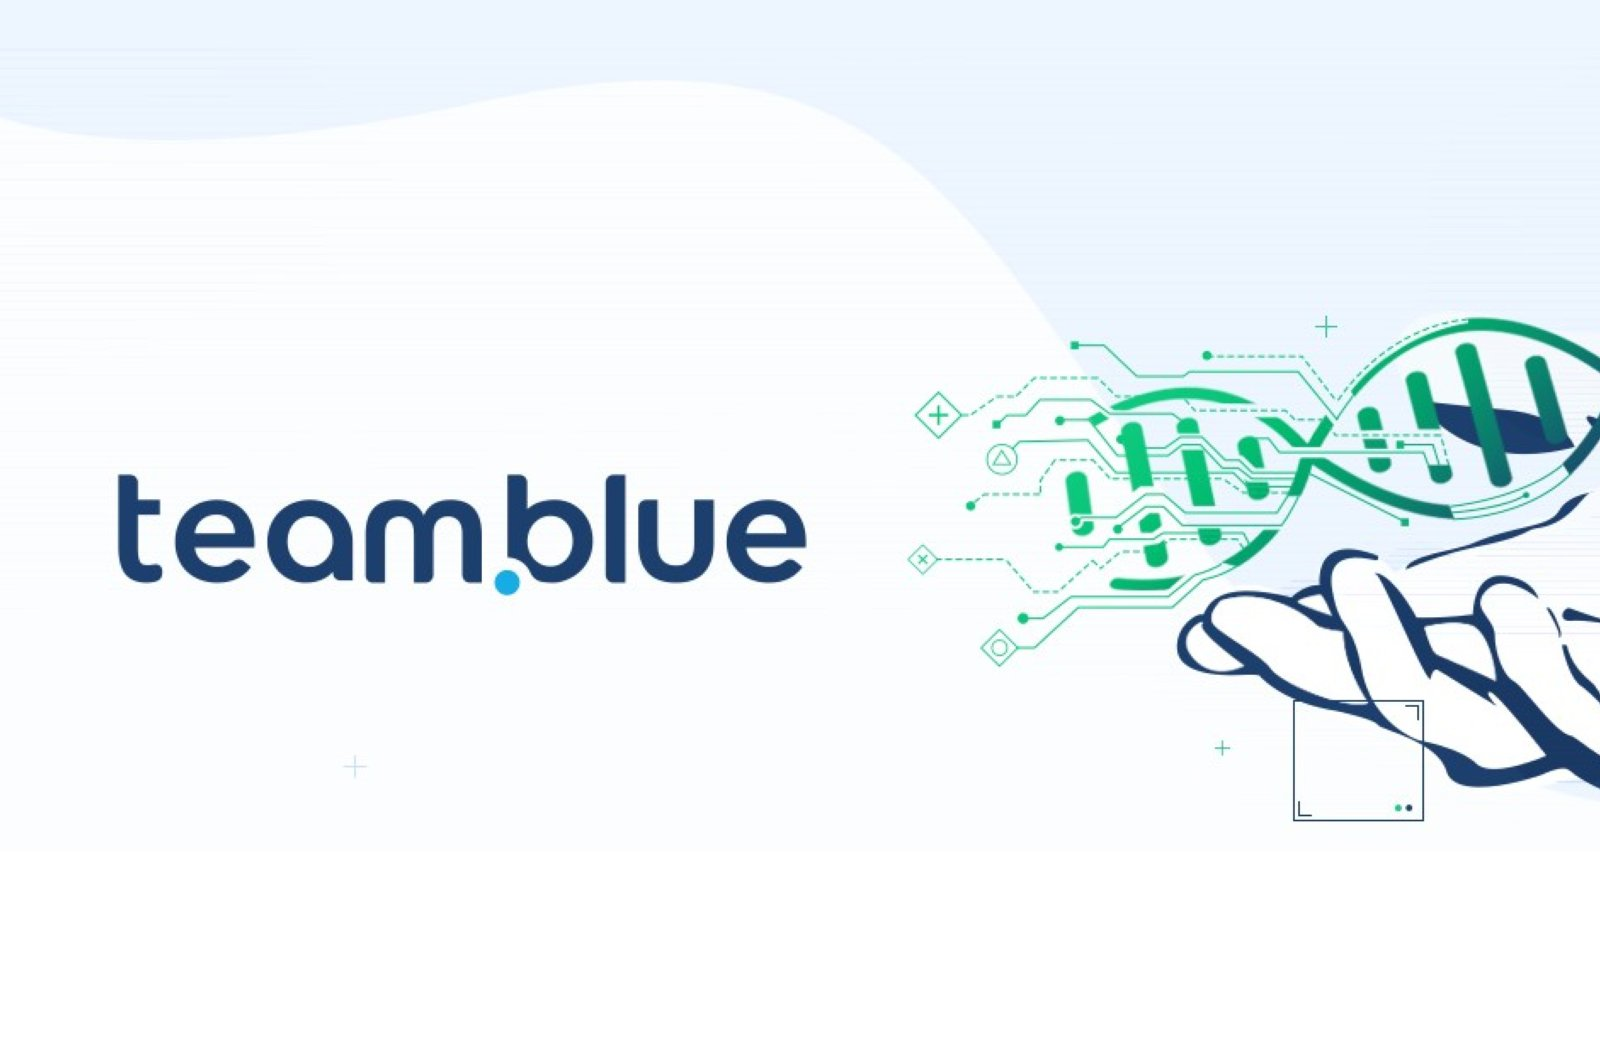 The logo of team.blue, which announced that it acquired Turkish network provider Natro on June 22, 2020. (Courtesy of team.blue)